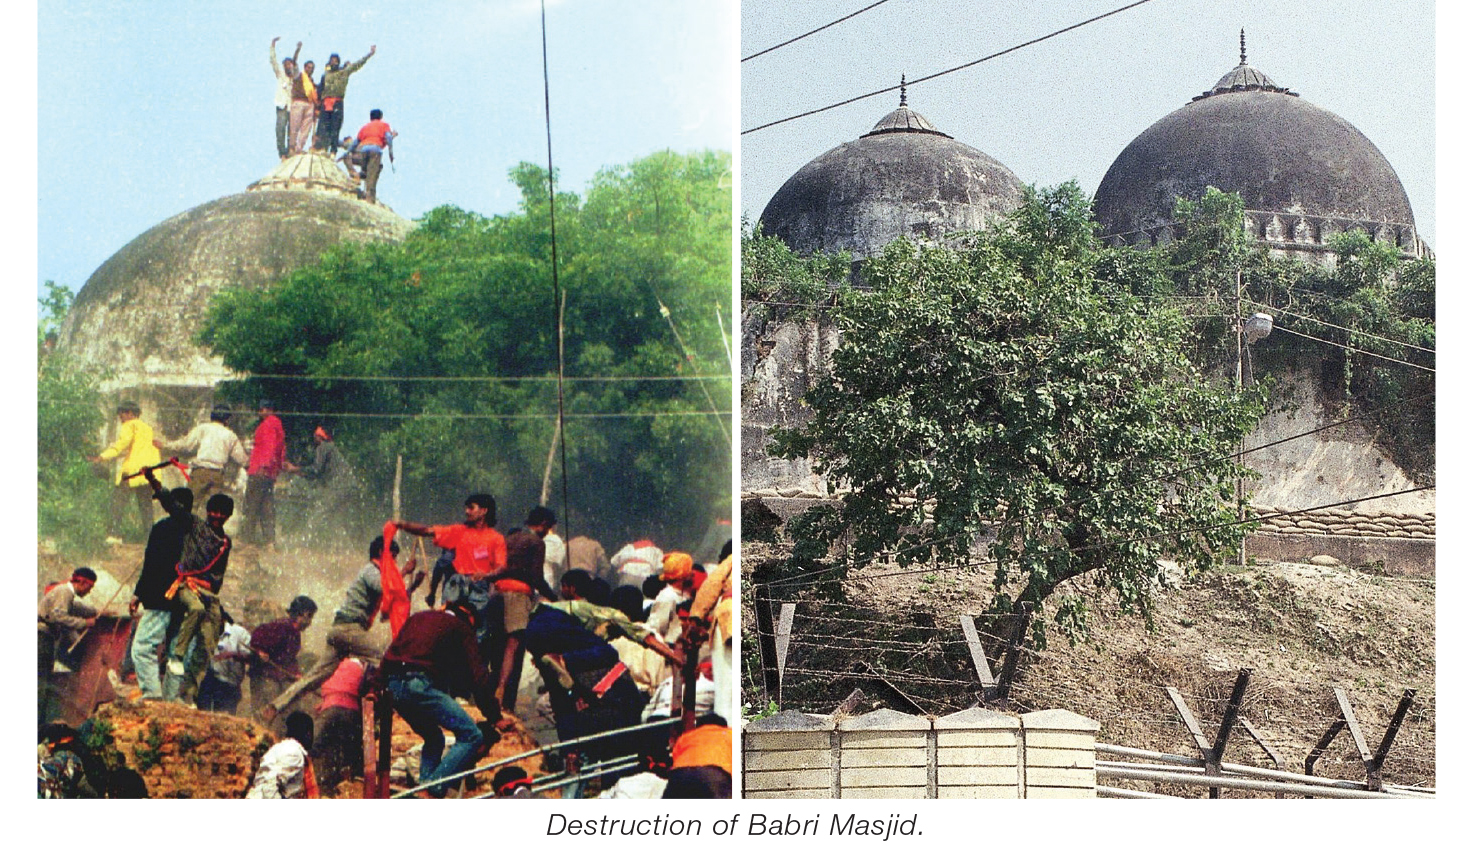 destruction-babri-masjid